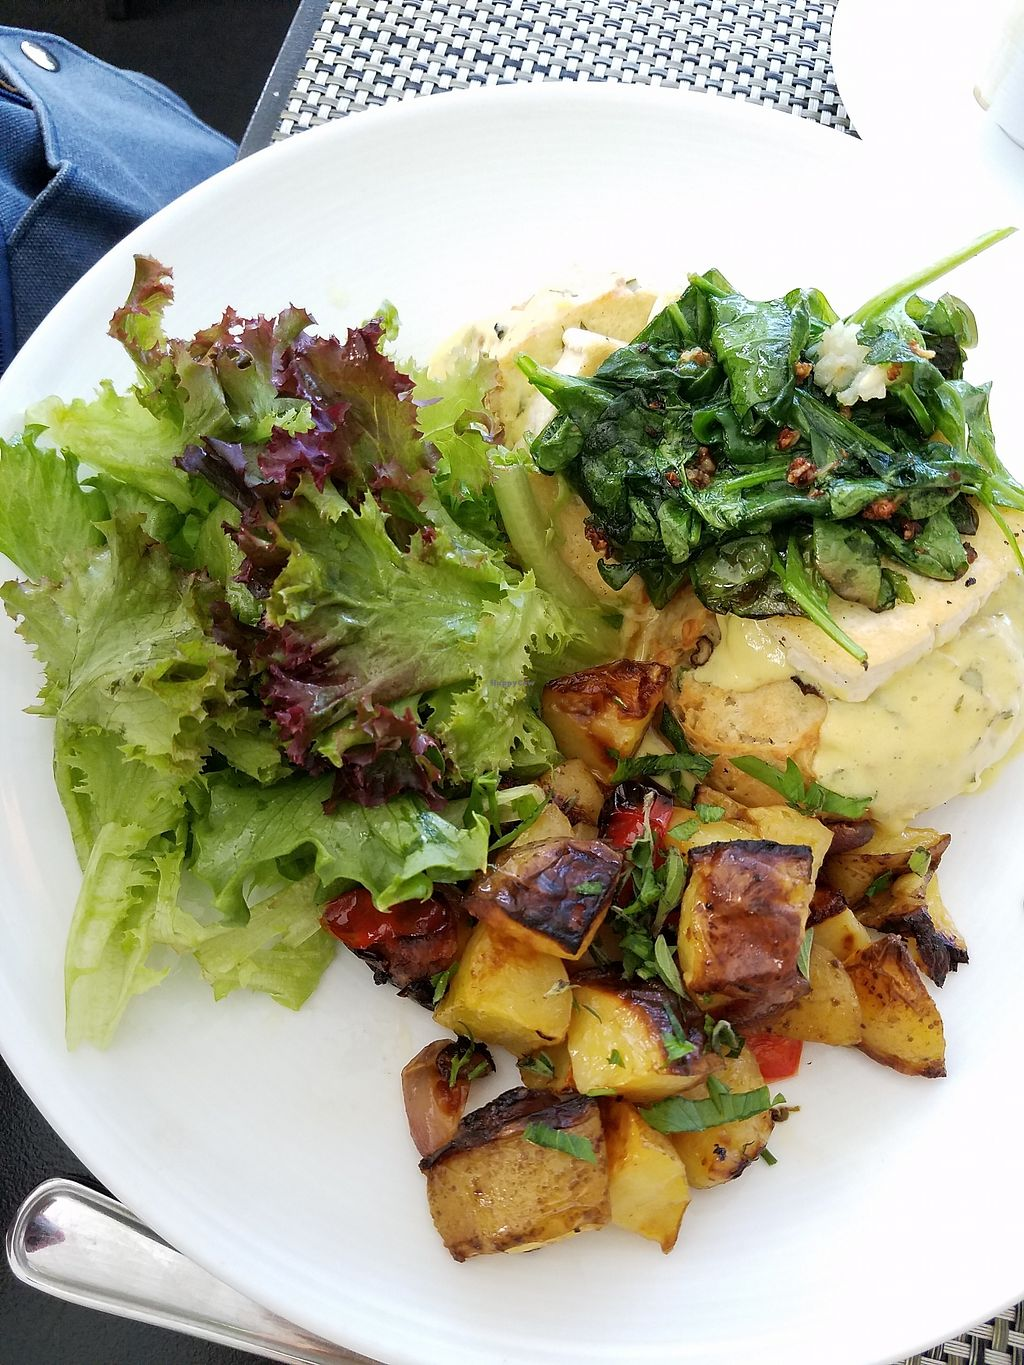 """Photo of True Bistro  by <a href=""""/members/profile/MoniqueGS"""">MoniqueGS</a> <br/>Tofu Benedict <br/> July 17, 2017  - <a href='/contact/abuse/image/24373/281440'>Report</a>"""